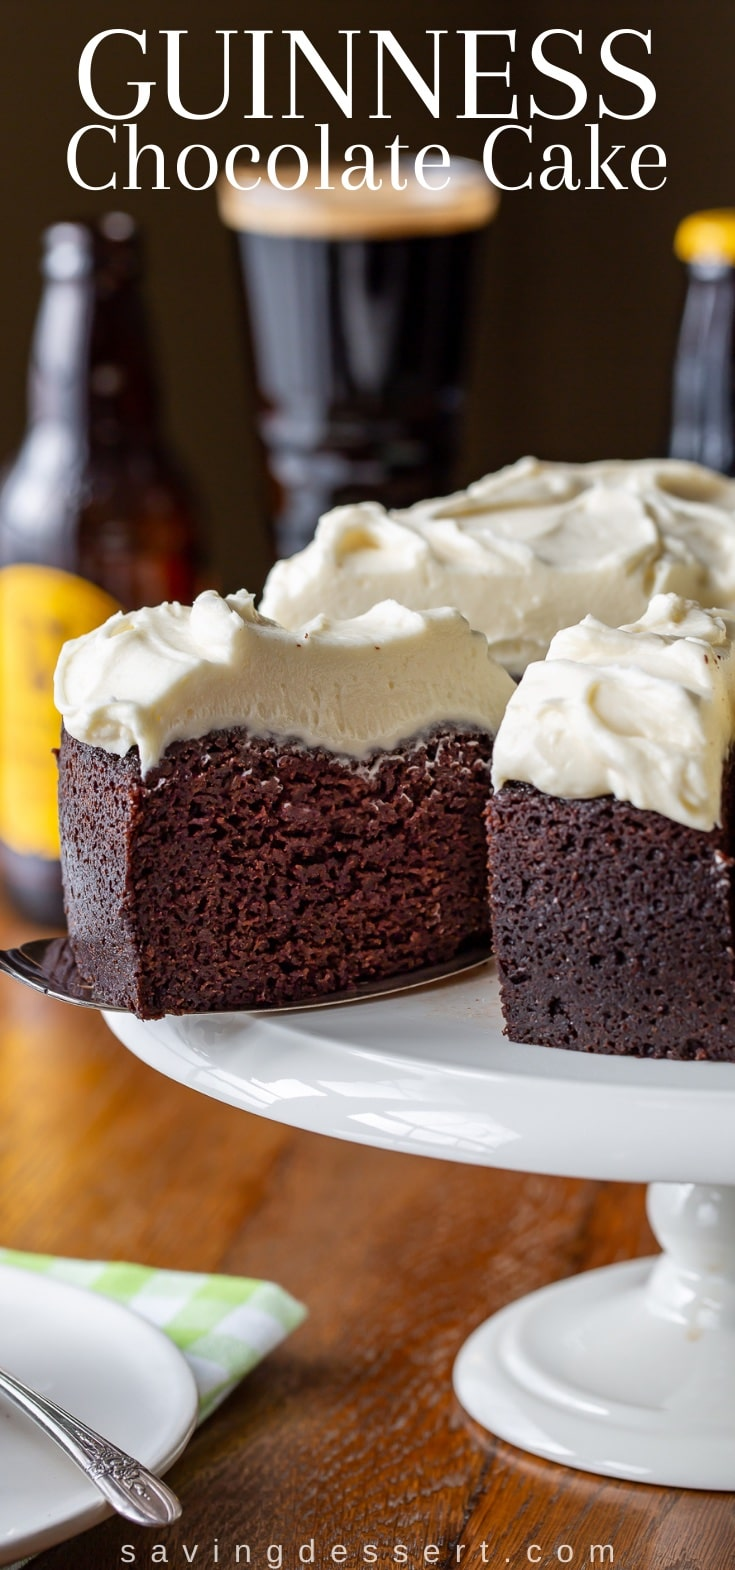 A sliced chocolate cake with white frosting on a cake stand